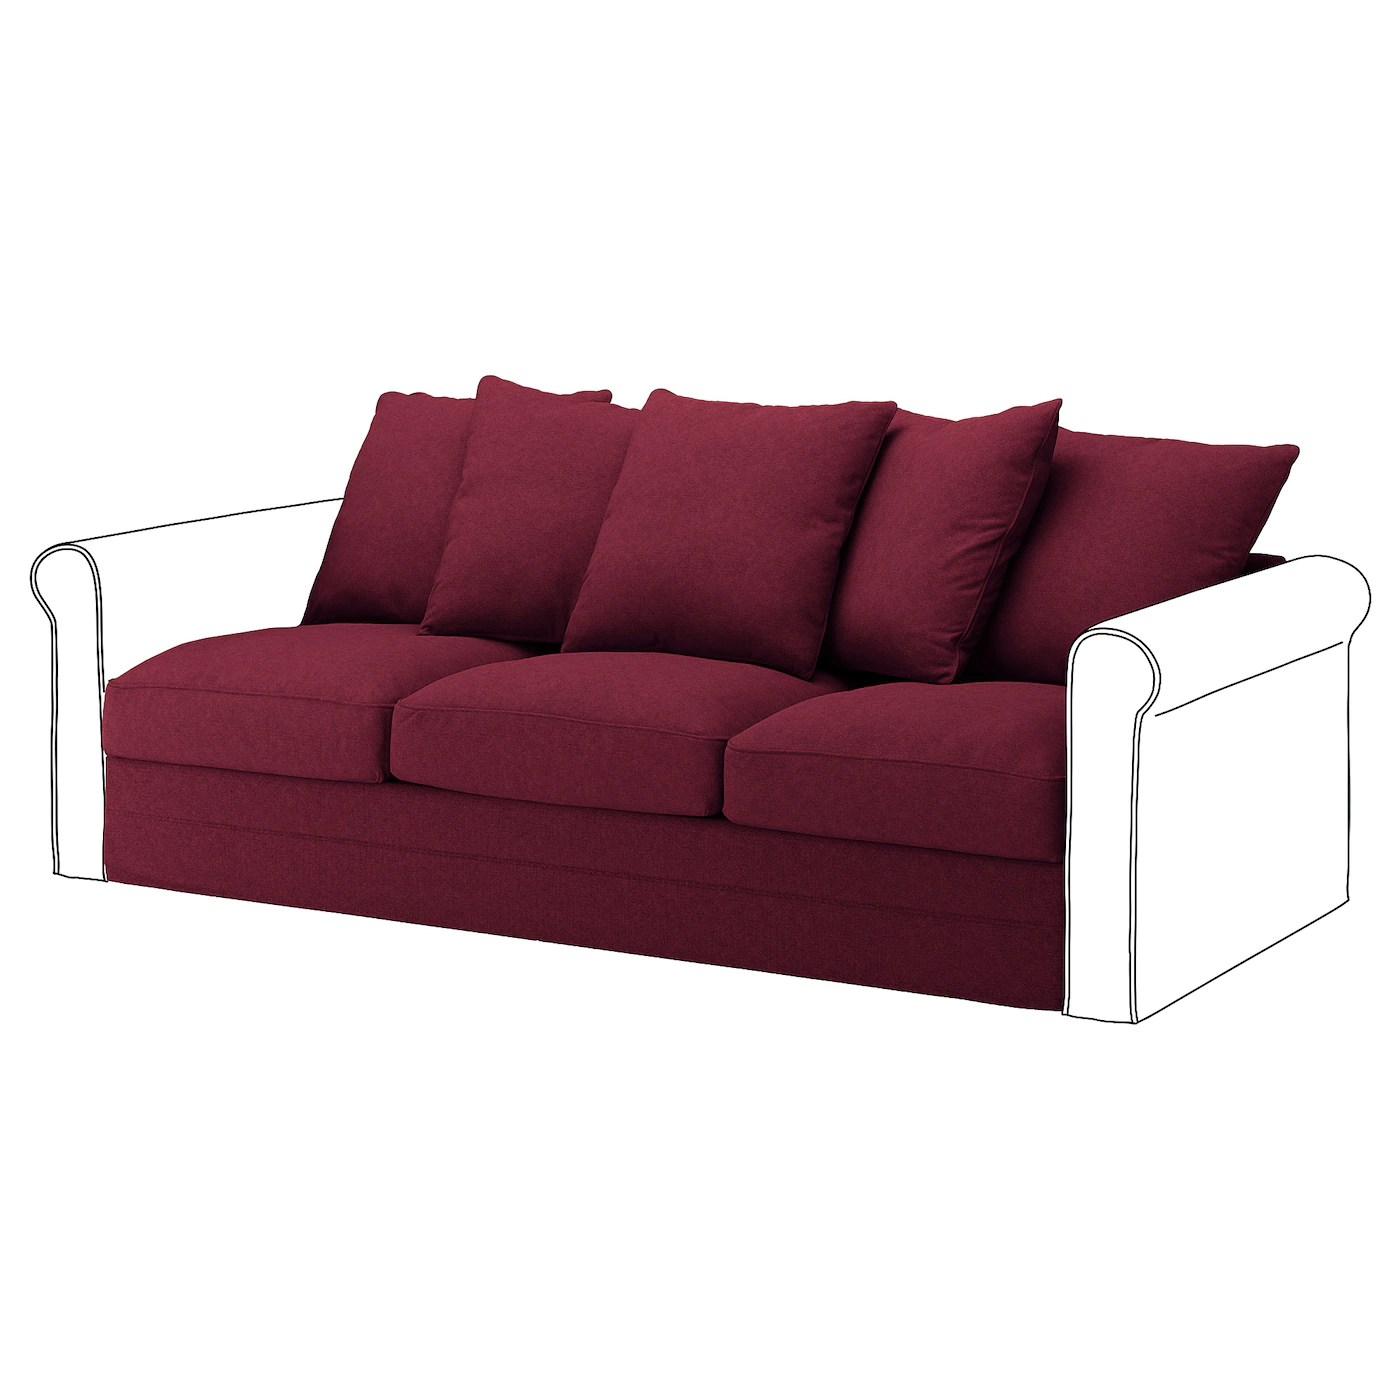 modular sofas ireland sofa dry cleaners in east delhi and sectional ikea